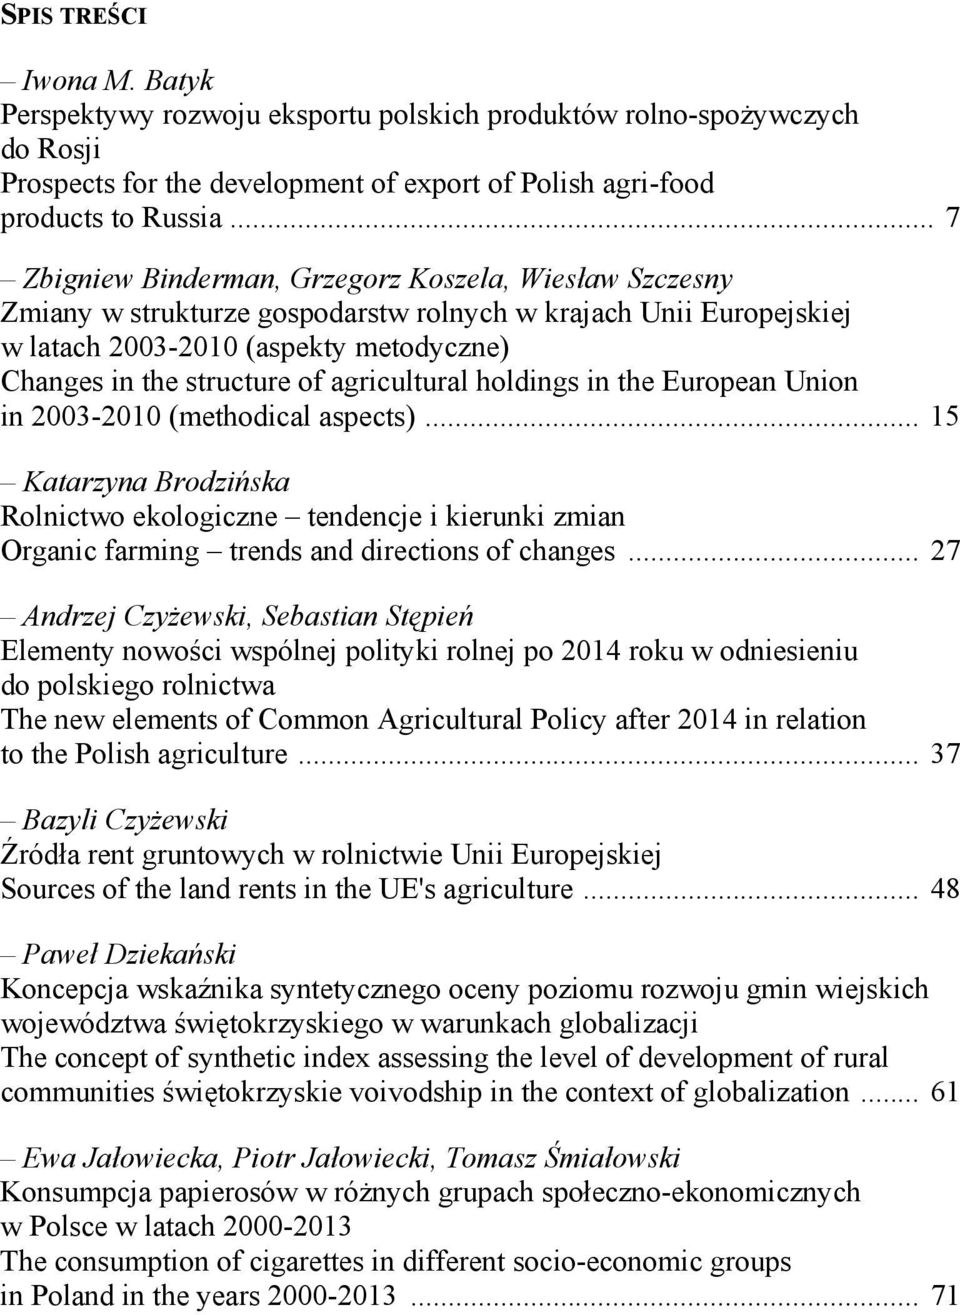 agricultural holdings in the European Union in 2003-2010 (methodical aspects).